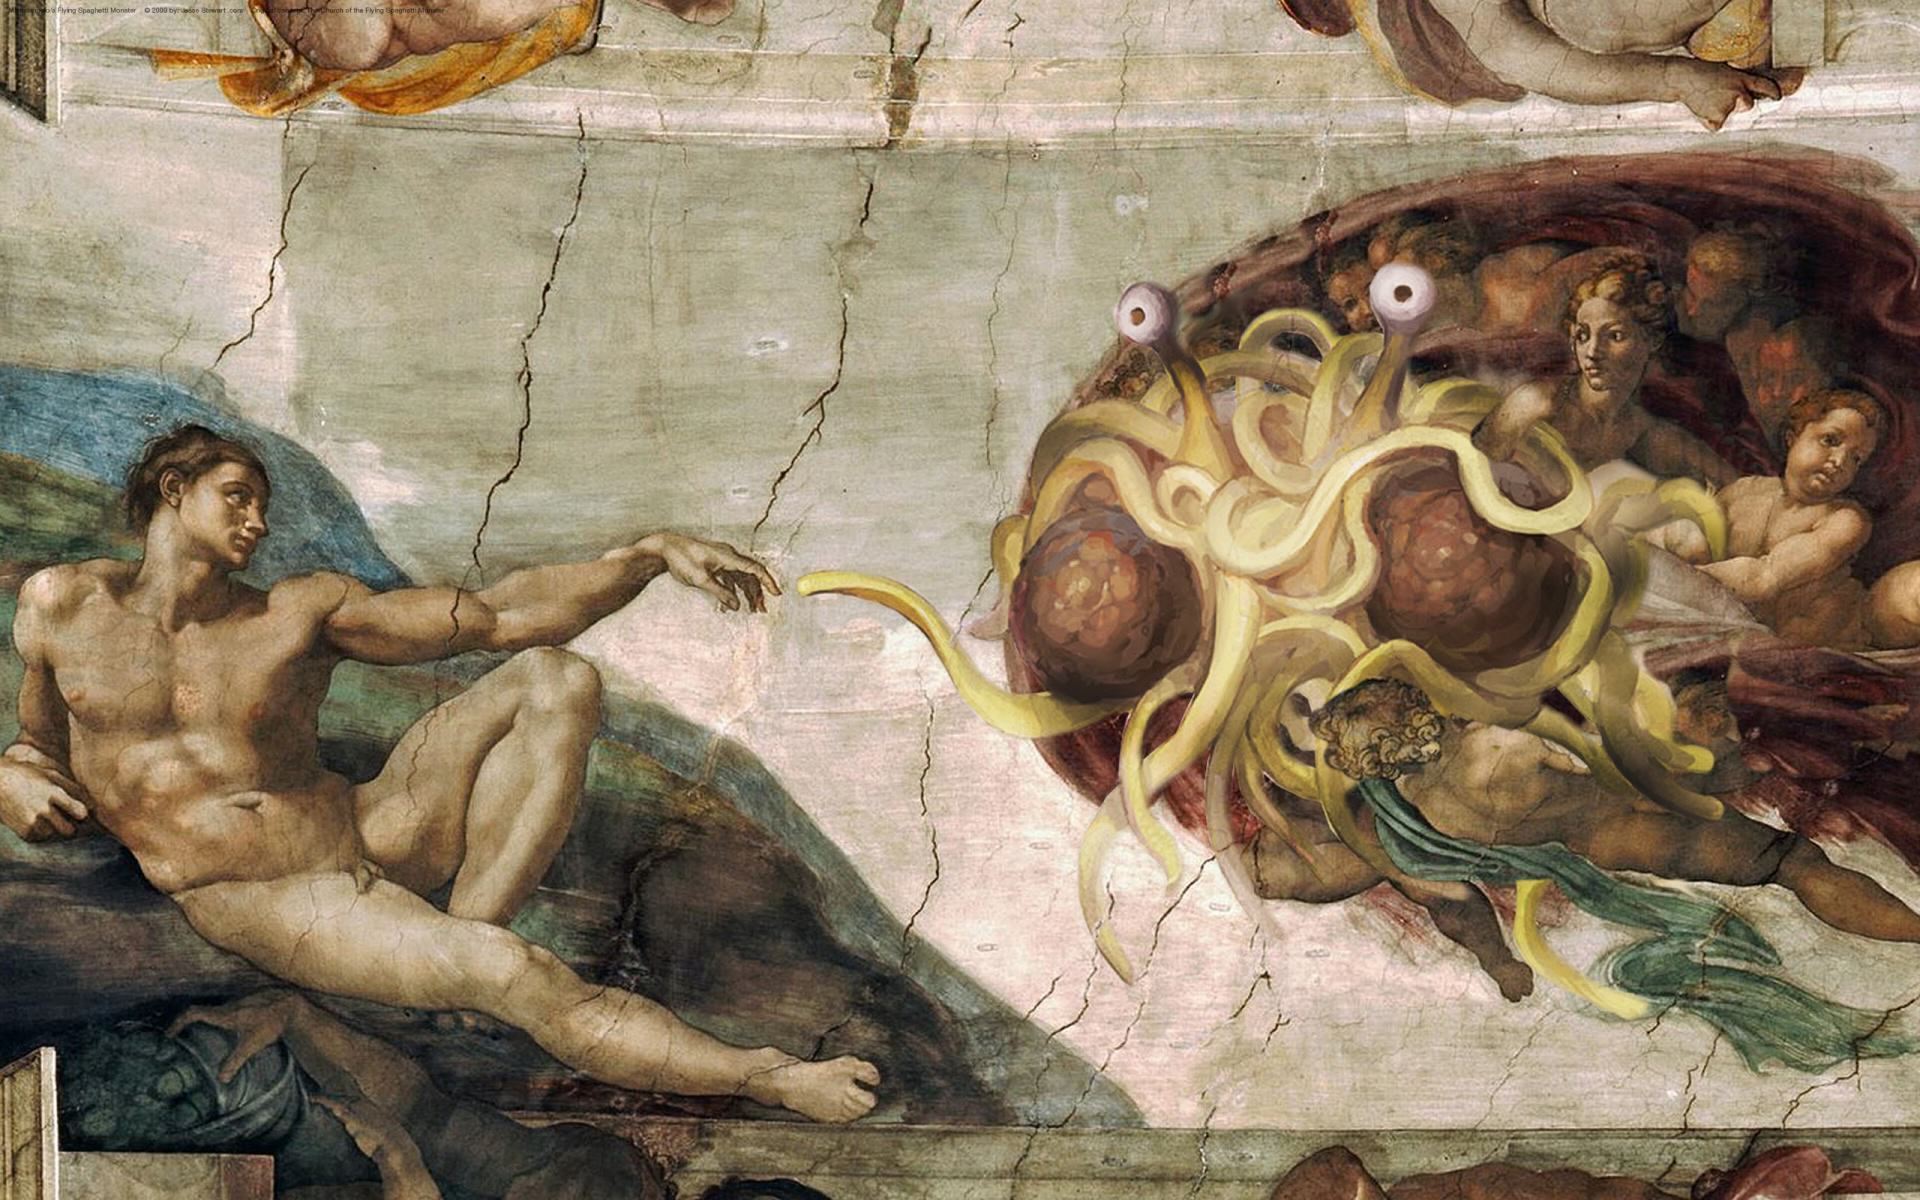 Icelanders Are Converting To A Unique Religion, To Make Money flyingspaghettimonster